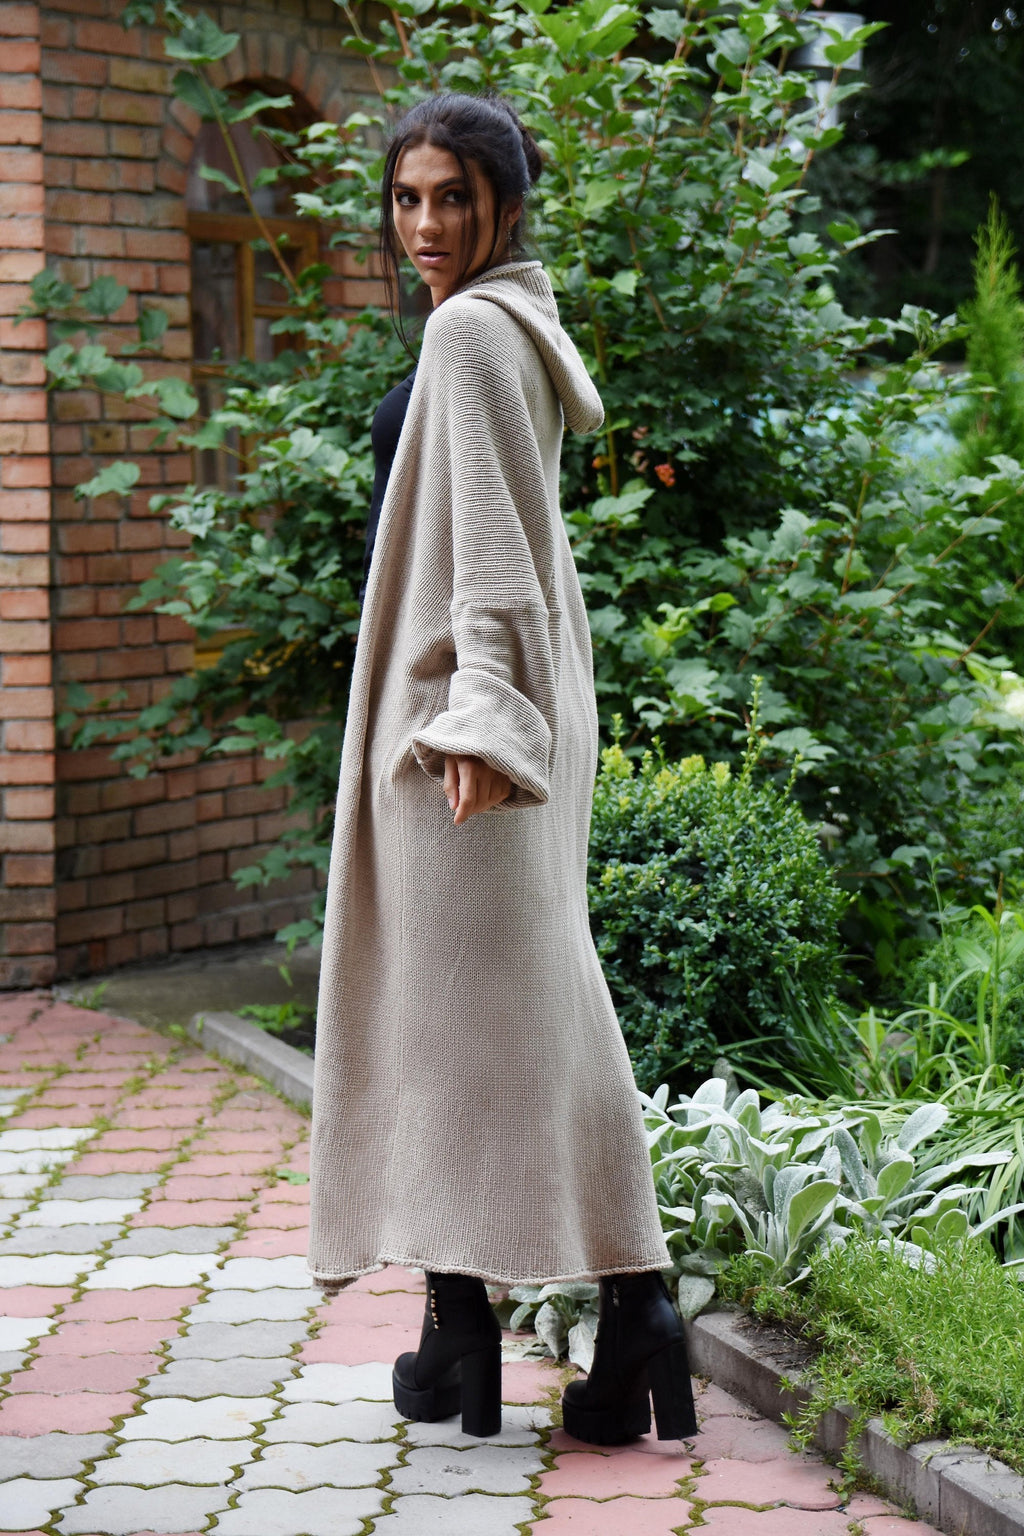 Cashmere long cardigan, Cashmere chunky sweater coat, women's maxi cardigan, Long sweater coat, Hooded oversized coat - Lena Felice